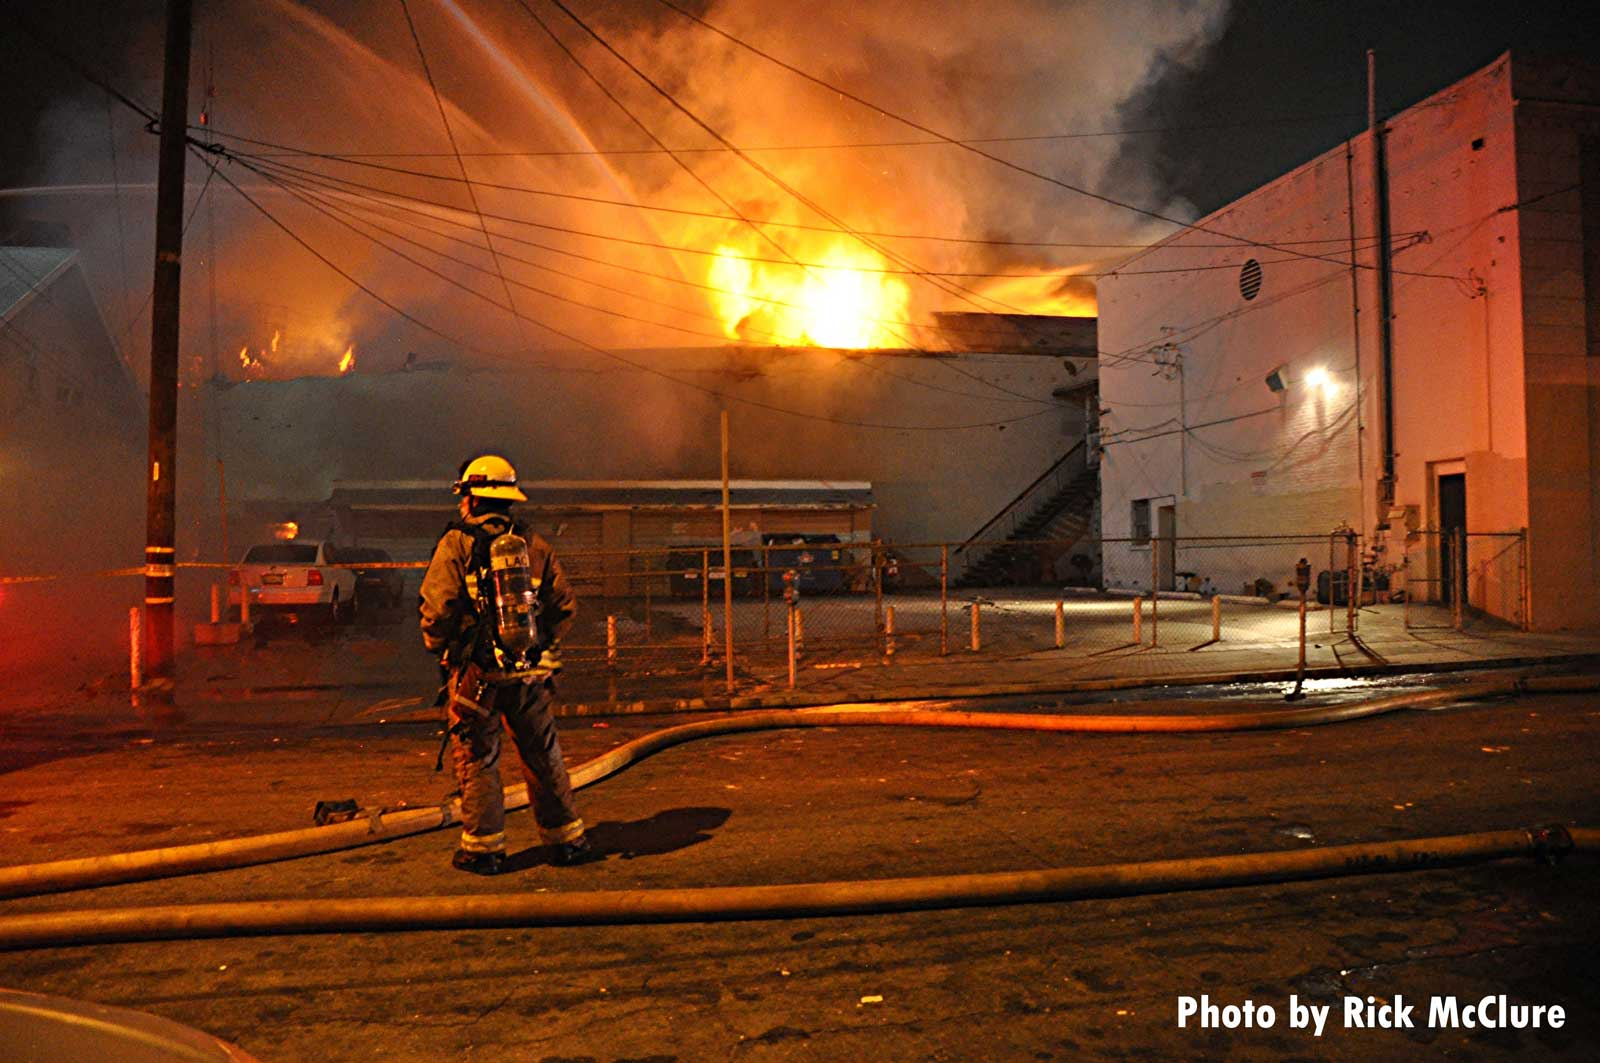 A firefighter at the scene of a raging fire in East L.A.